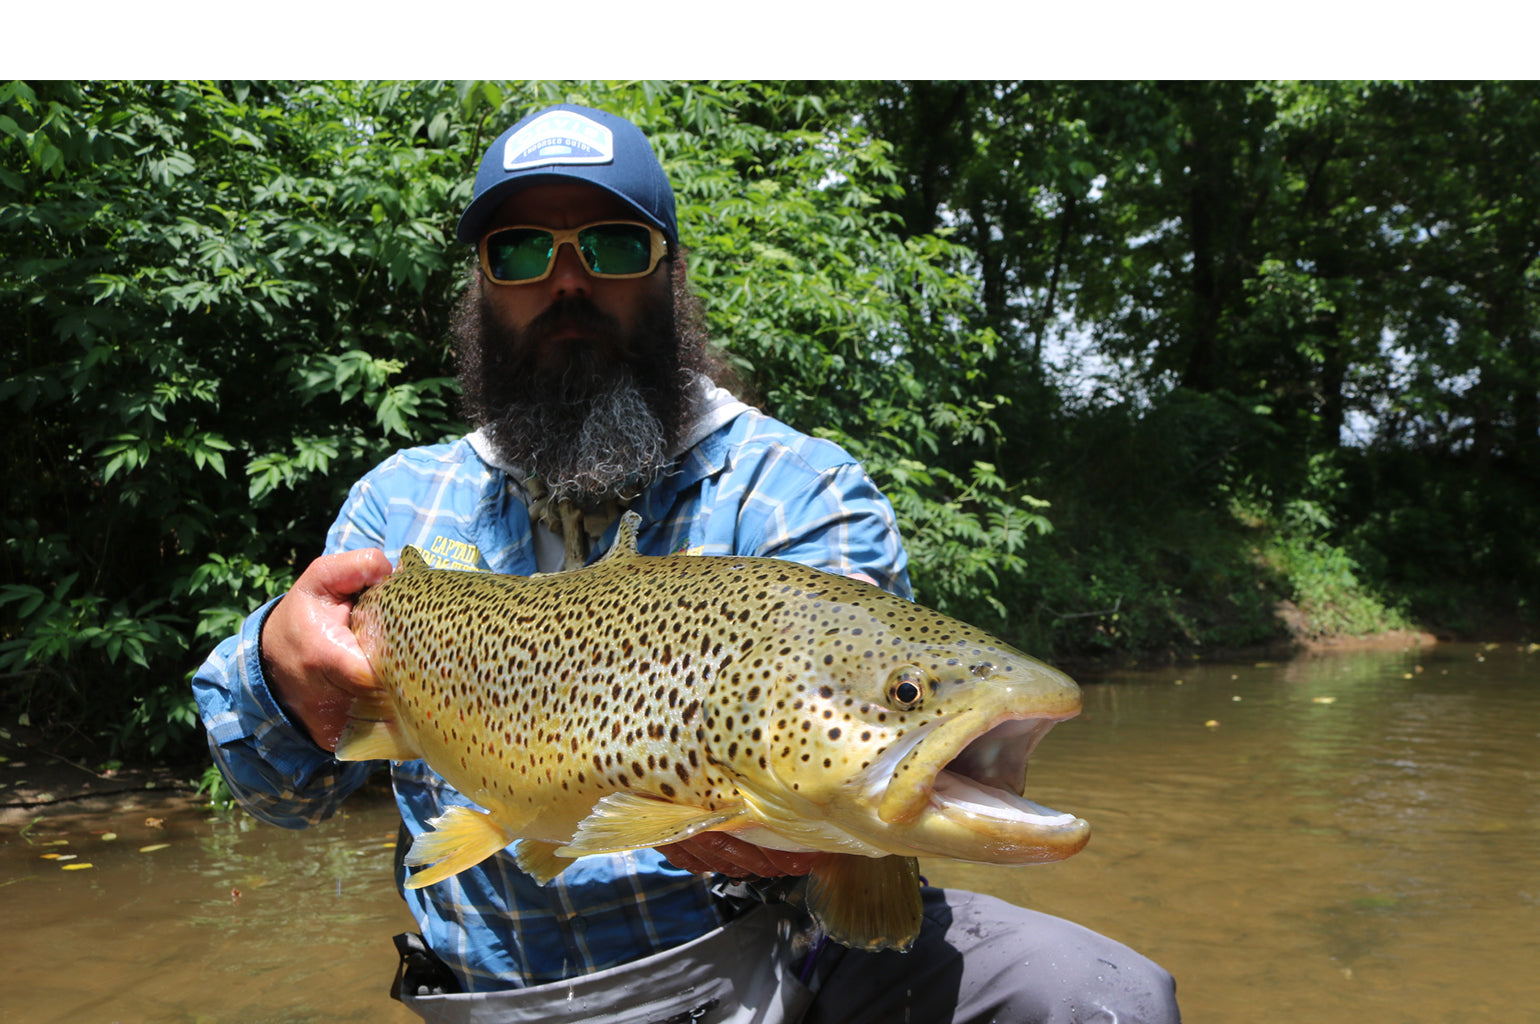 Capt. John McCloskey Hatch Outdoors Pro Staff